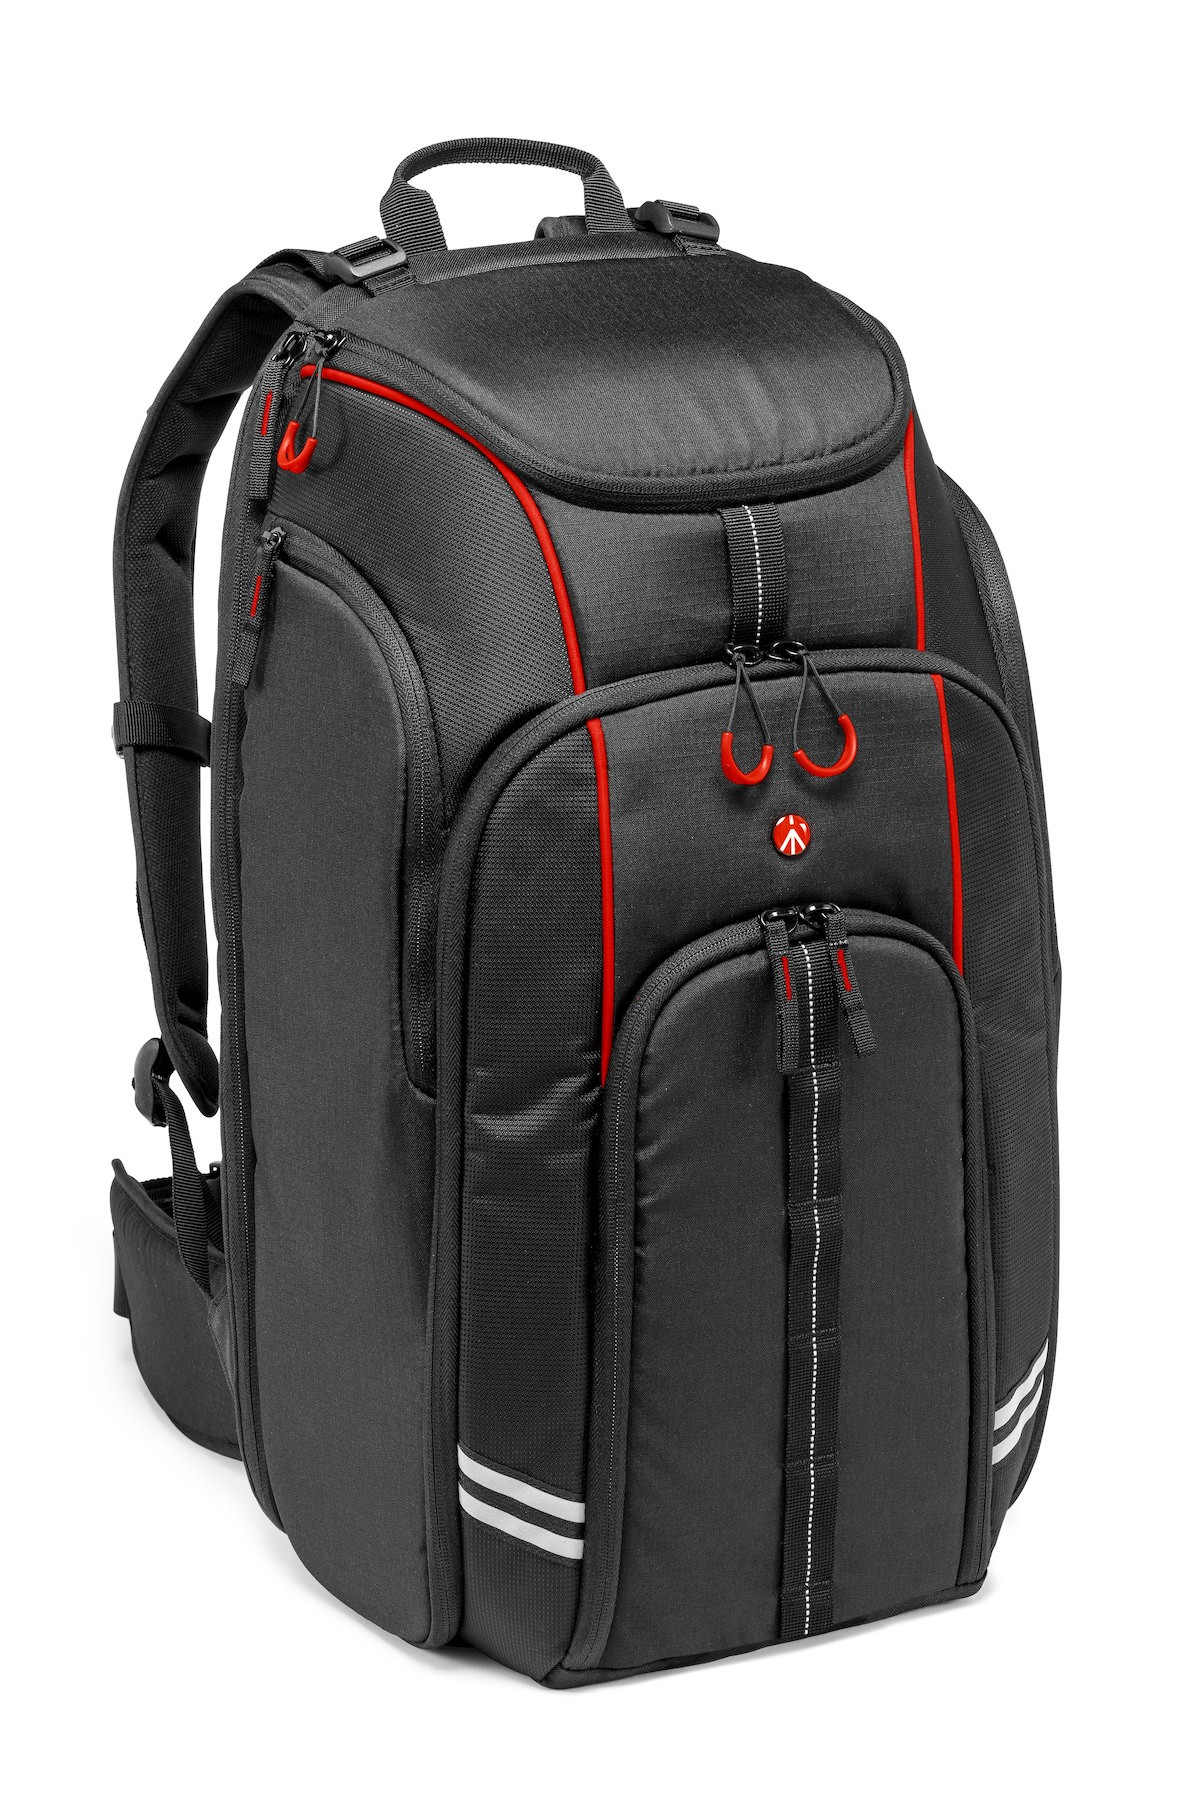 Aviator Drone Backpack for DJI